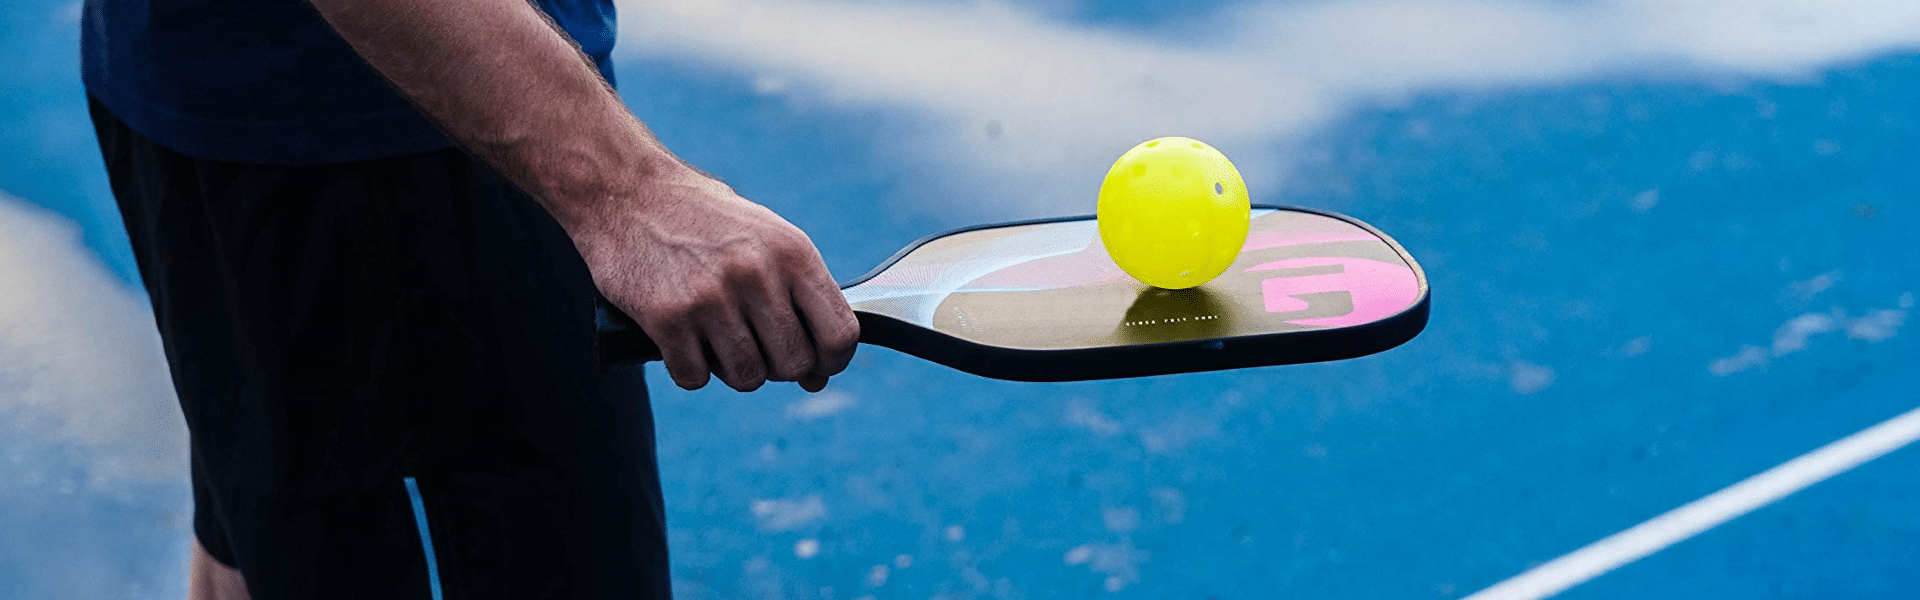 Best Pickleball Paddles for Beginners Reviewed in Detail